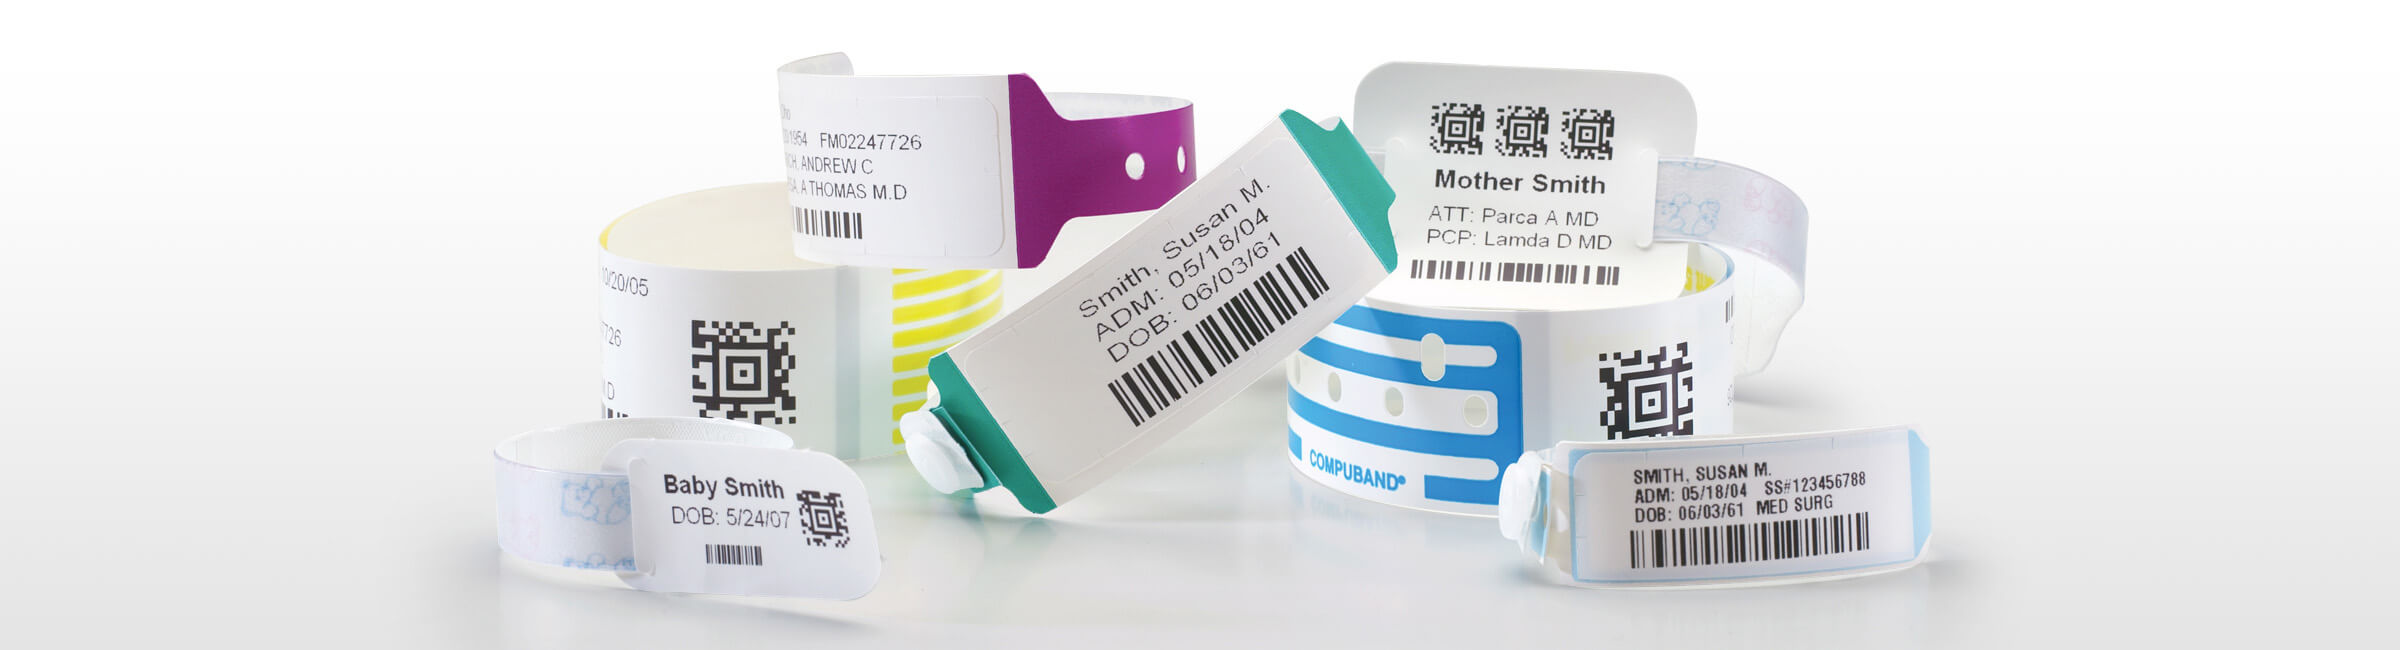 Hospital Bracelets Patient Wristbands For Hospitals Pdc Healthcare